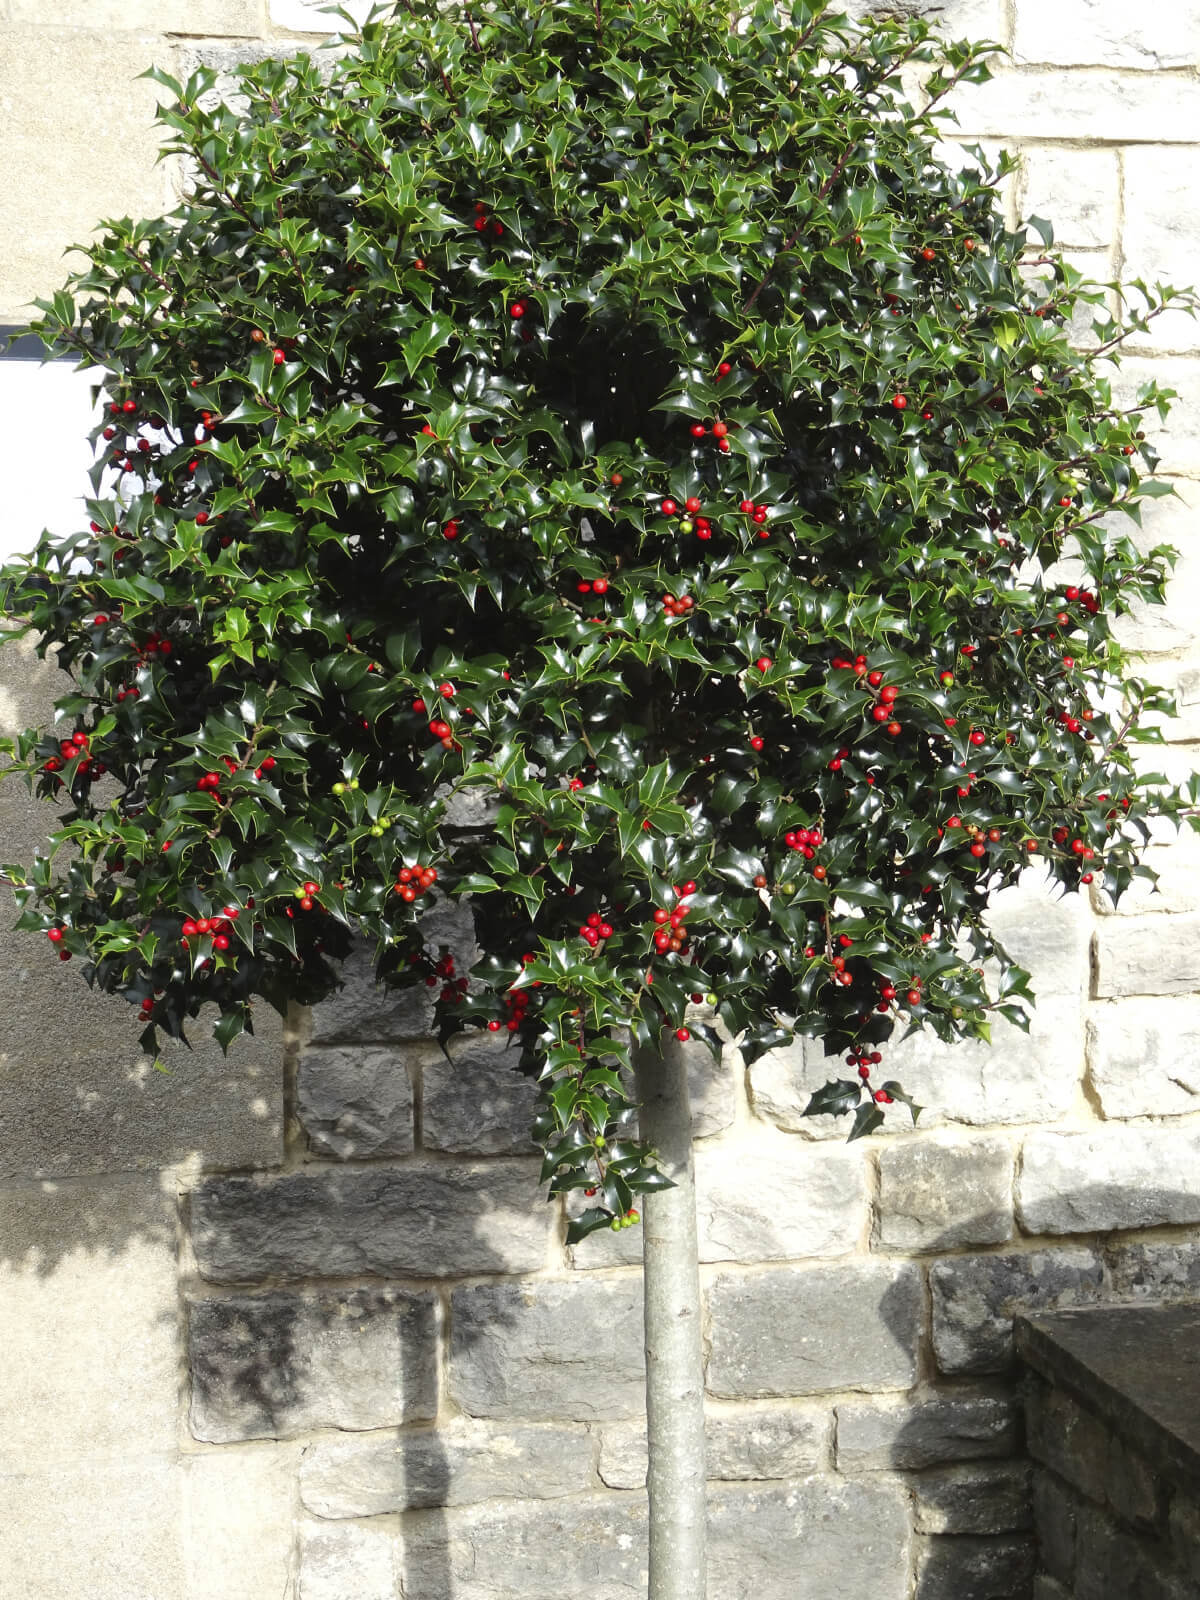 The leaves and texture on berry bushes vary. Some have soft colors and rough textures while others have deep rich colors and smooth and waxy textures. The look of the plant as well as the kind of berry are things to consider when choosing a berry bush.